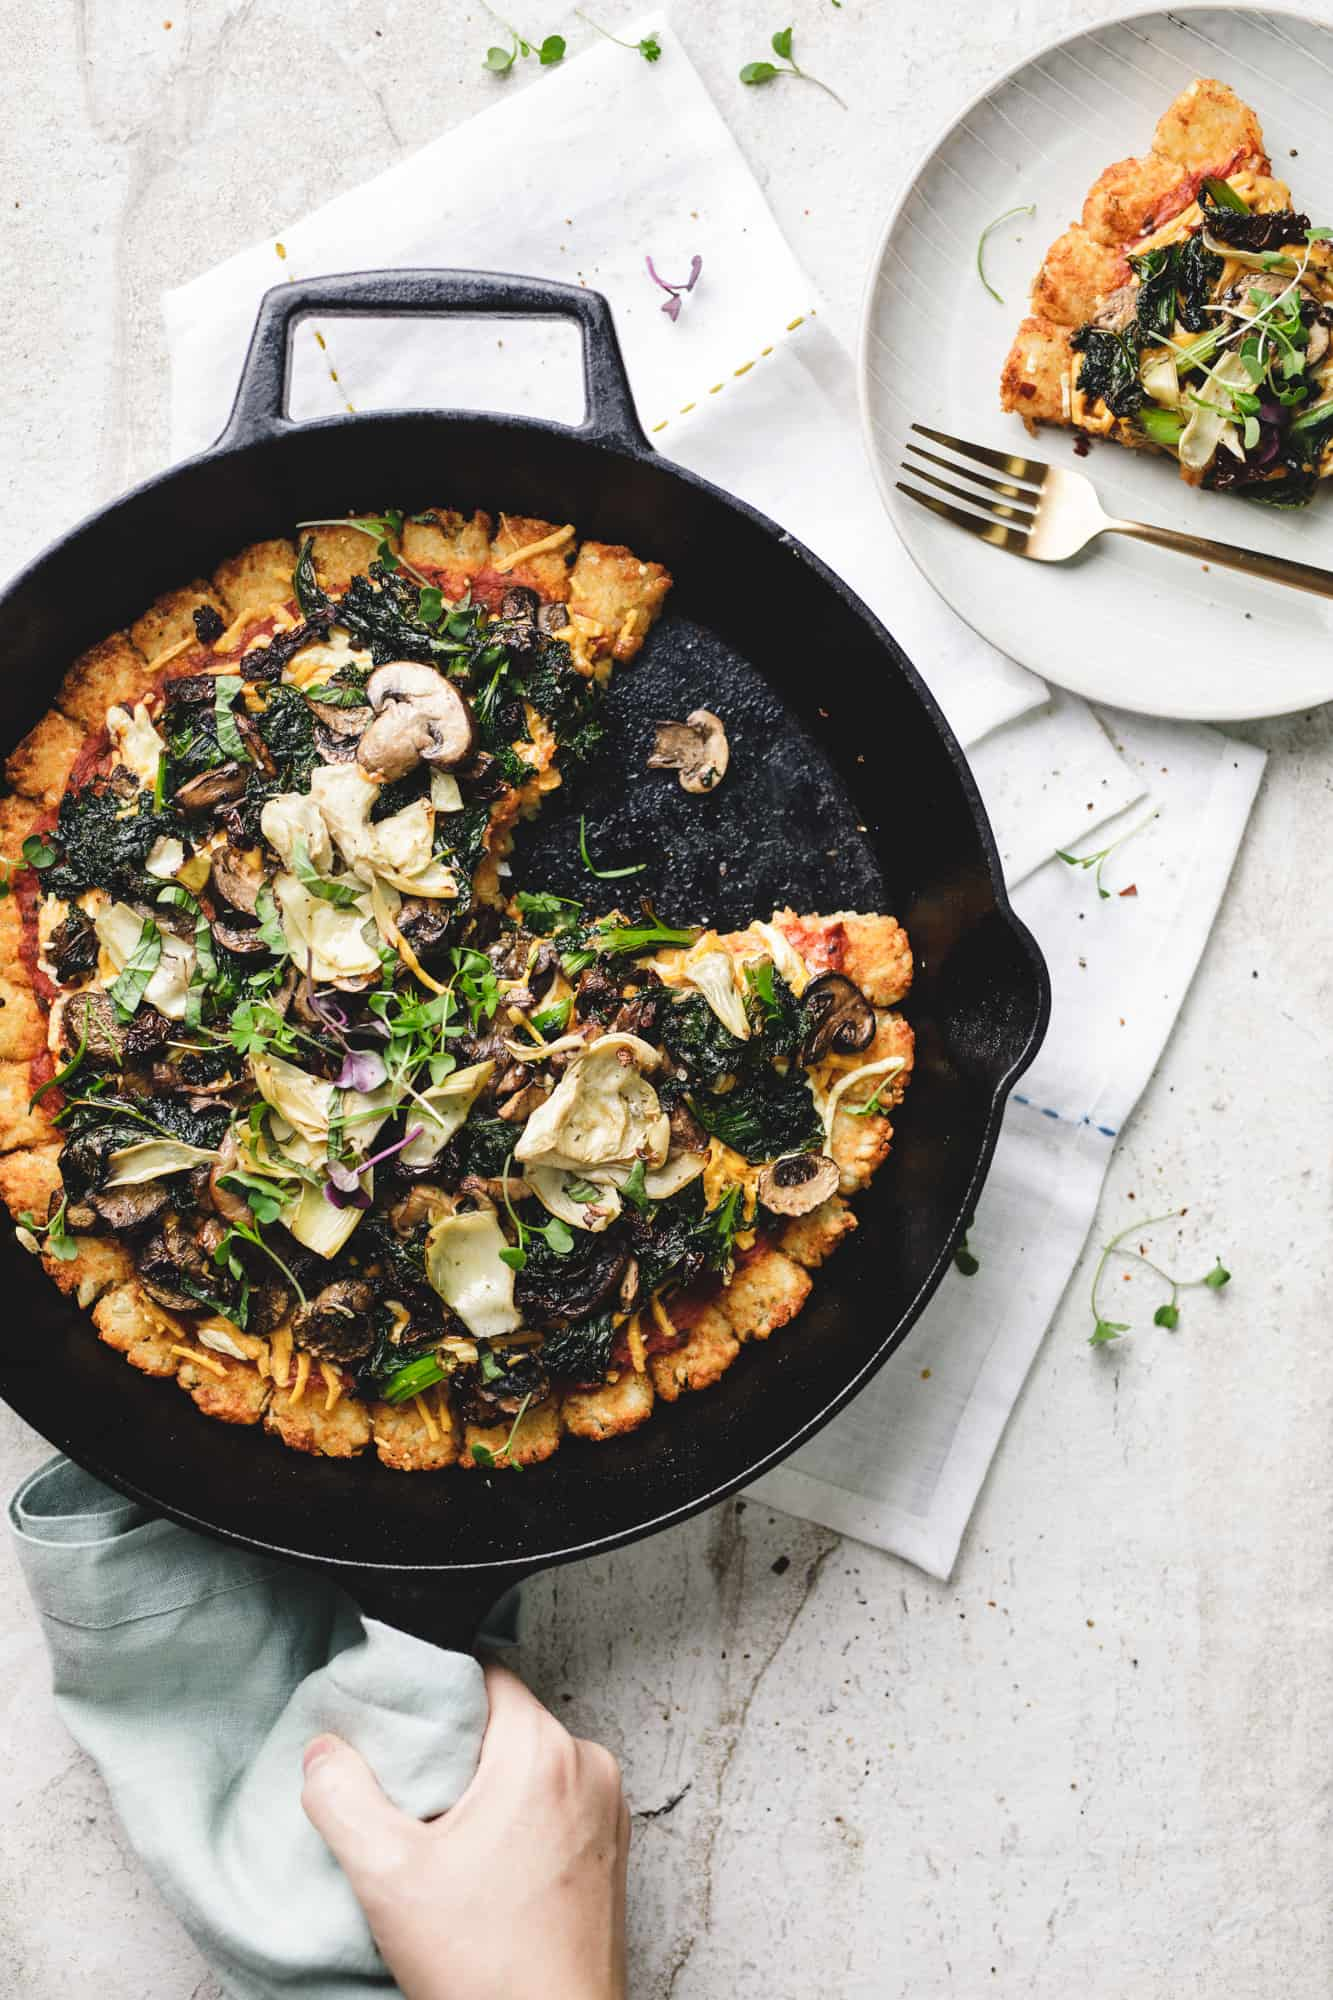 Vegan Tater Tot Pizza